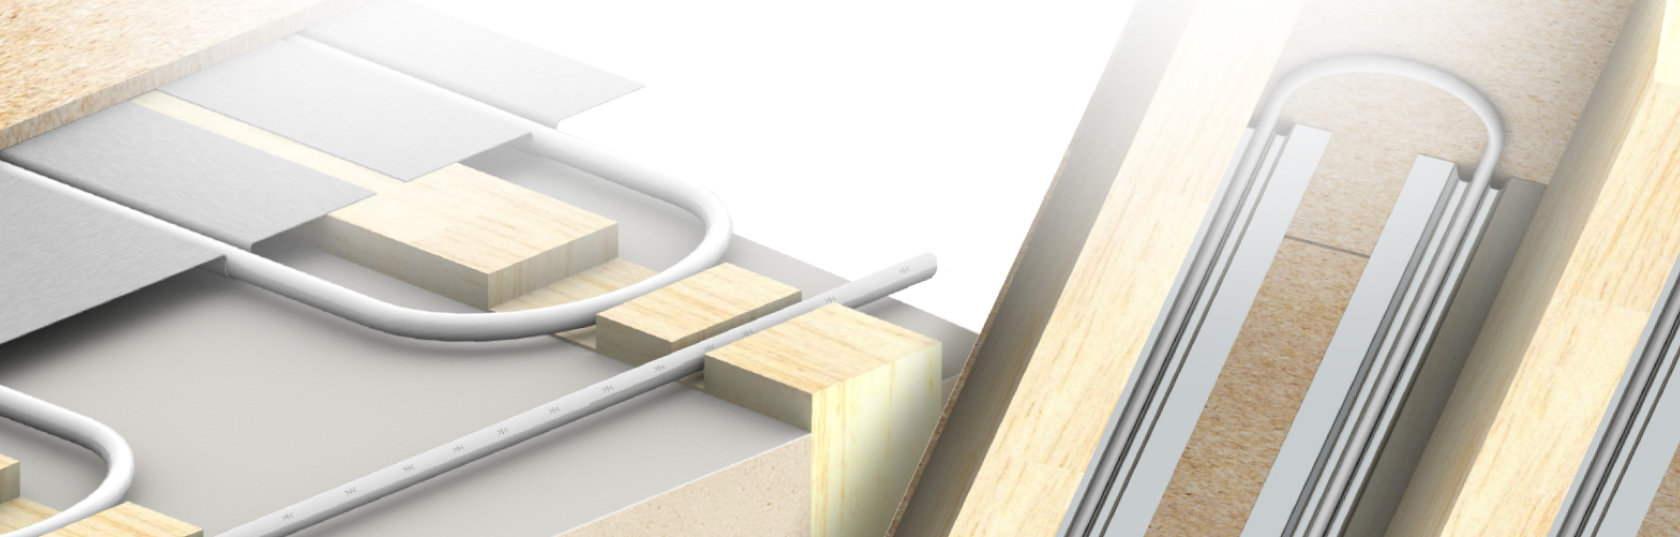 Heat rising: the evolution of underfloor heating